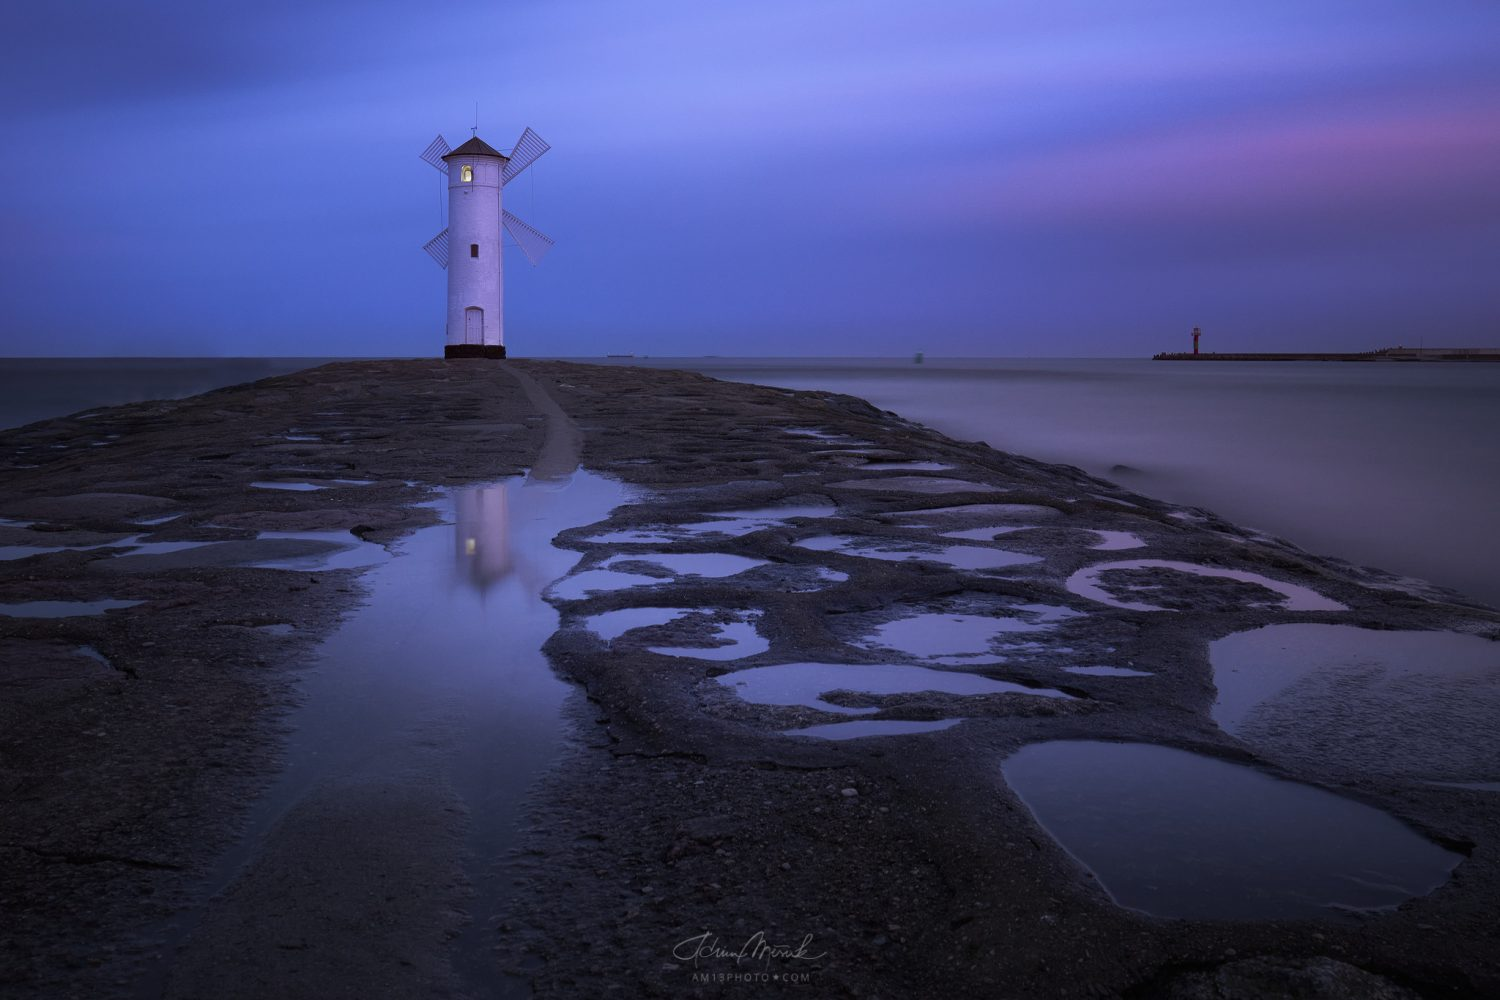 Swinoujscie, Poland, longexposure